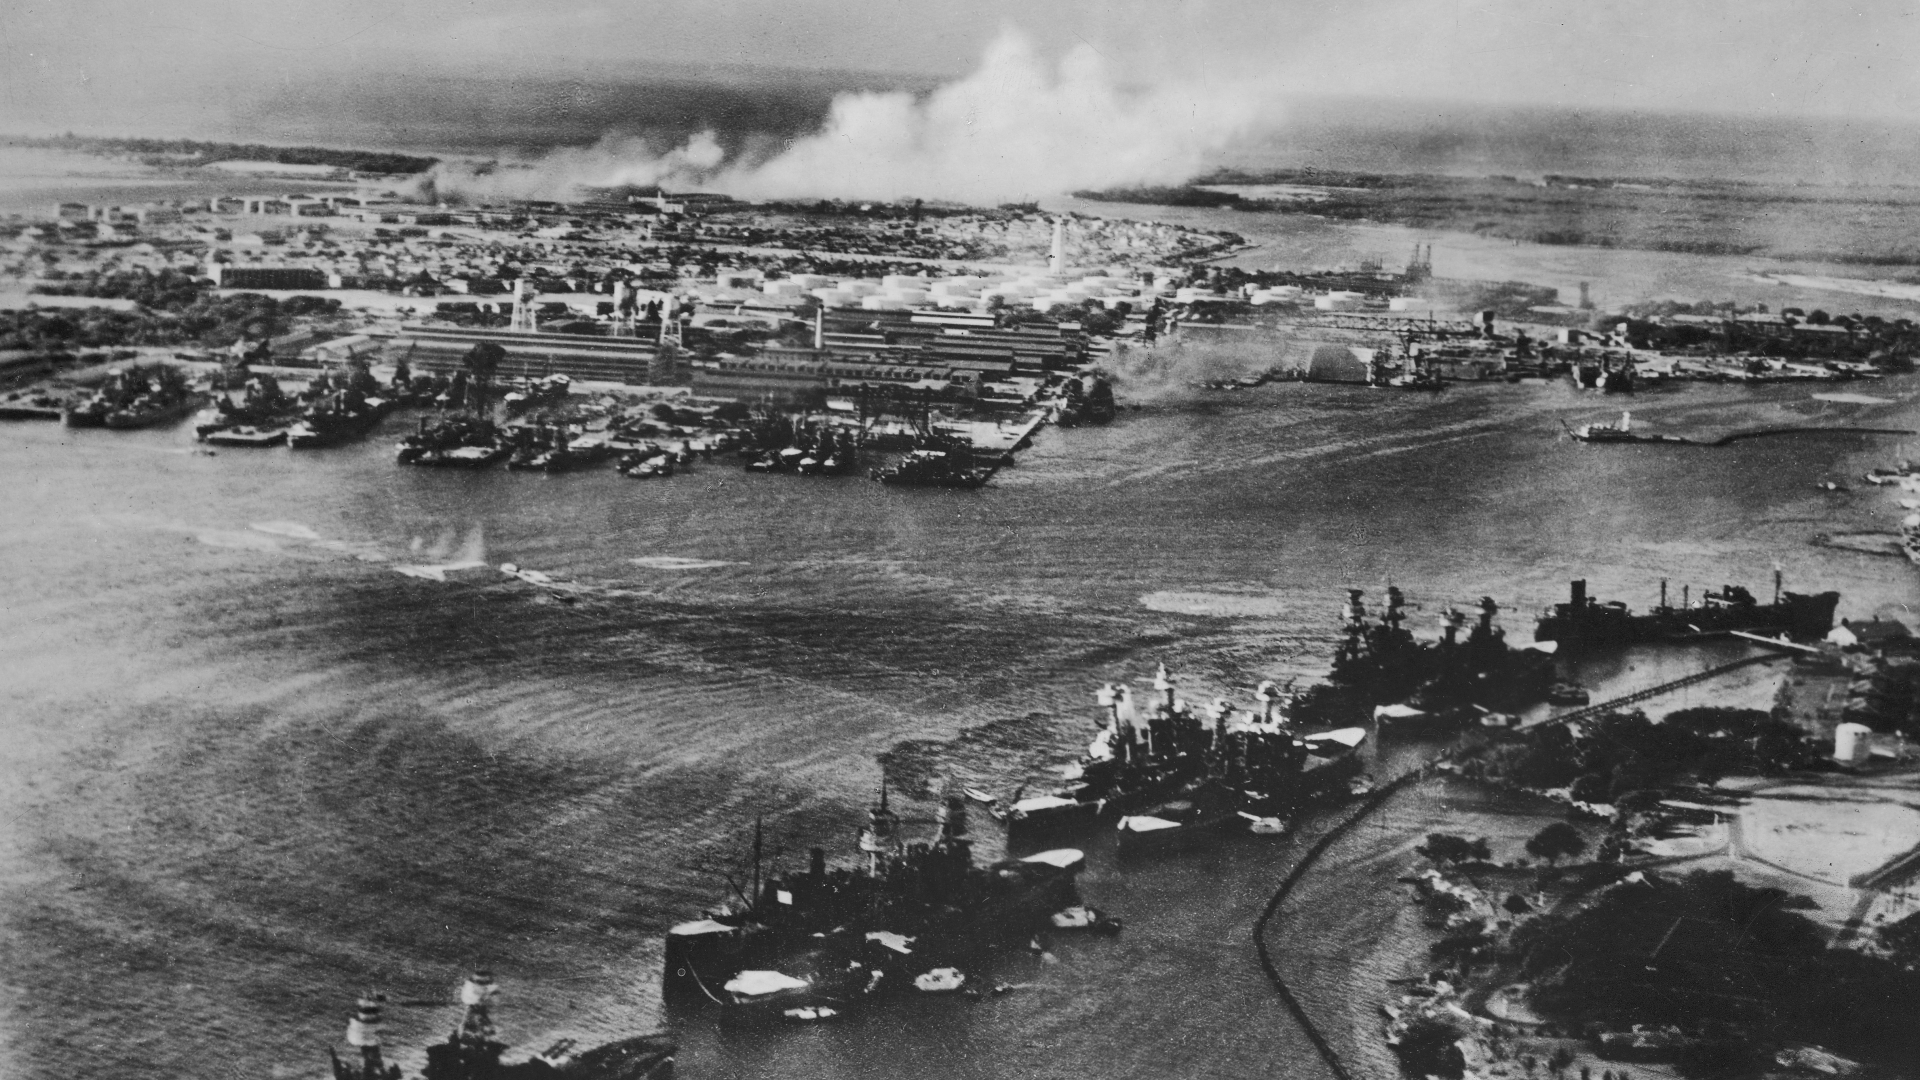 Captured Japanese photo showing aerial view of the attack on Pearl Harbor with ripples and waves around US battleships hit by Japanese torpedoes. (Credit: Time Life Pictures/US Navy/The LIFE Picture Collection/Getty Images)